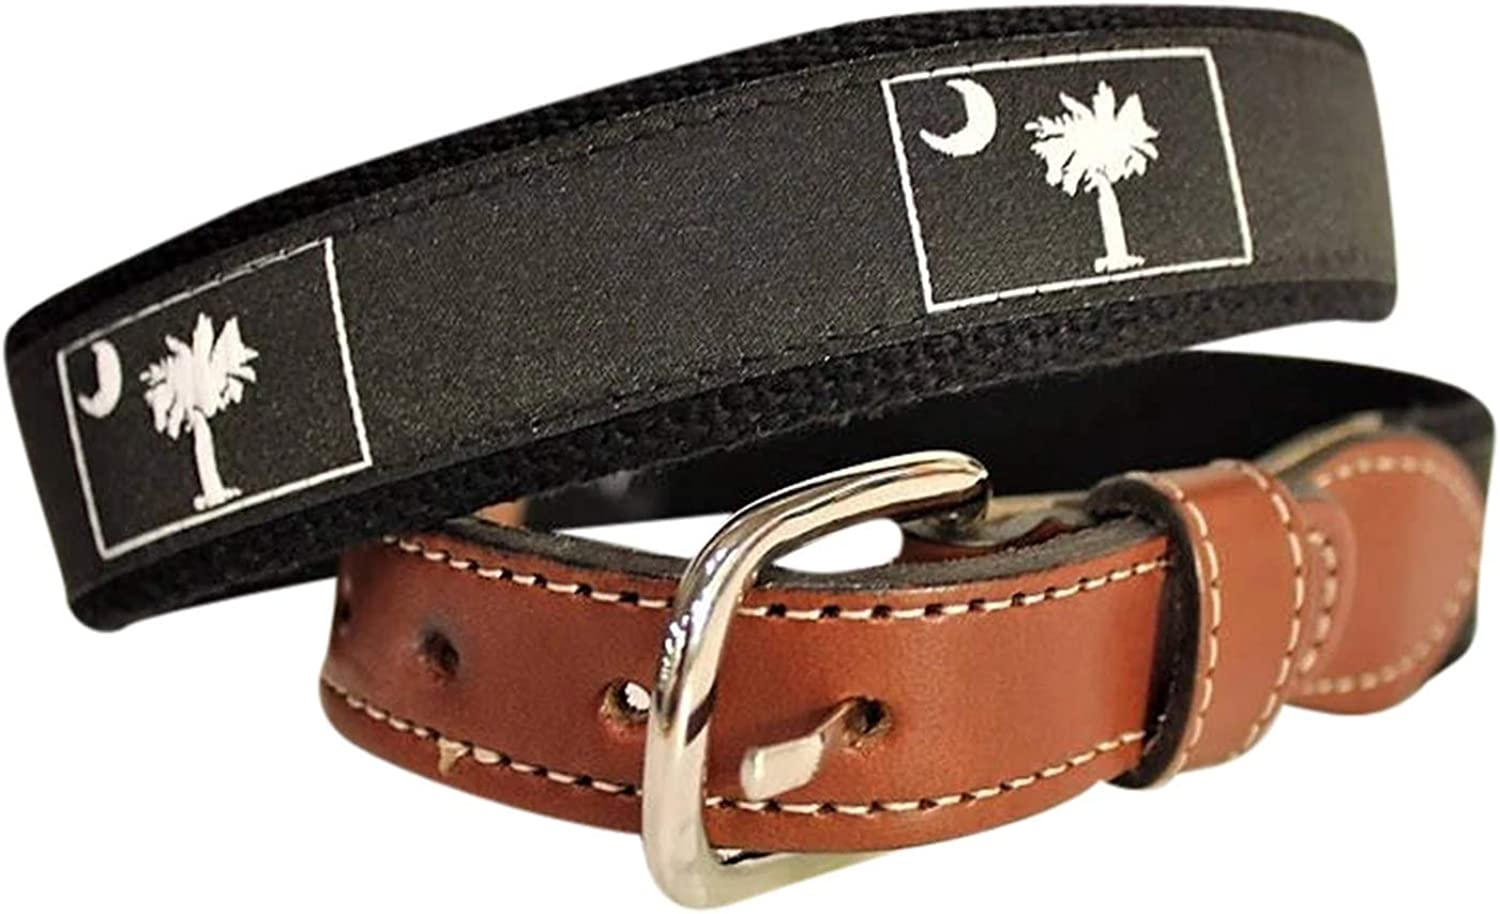 South Carolina State Flag Palmetto Tree and Moon Mens Web Leather Belt Many colors and designs.